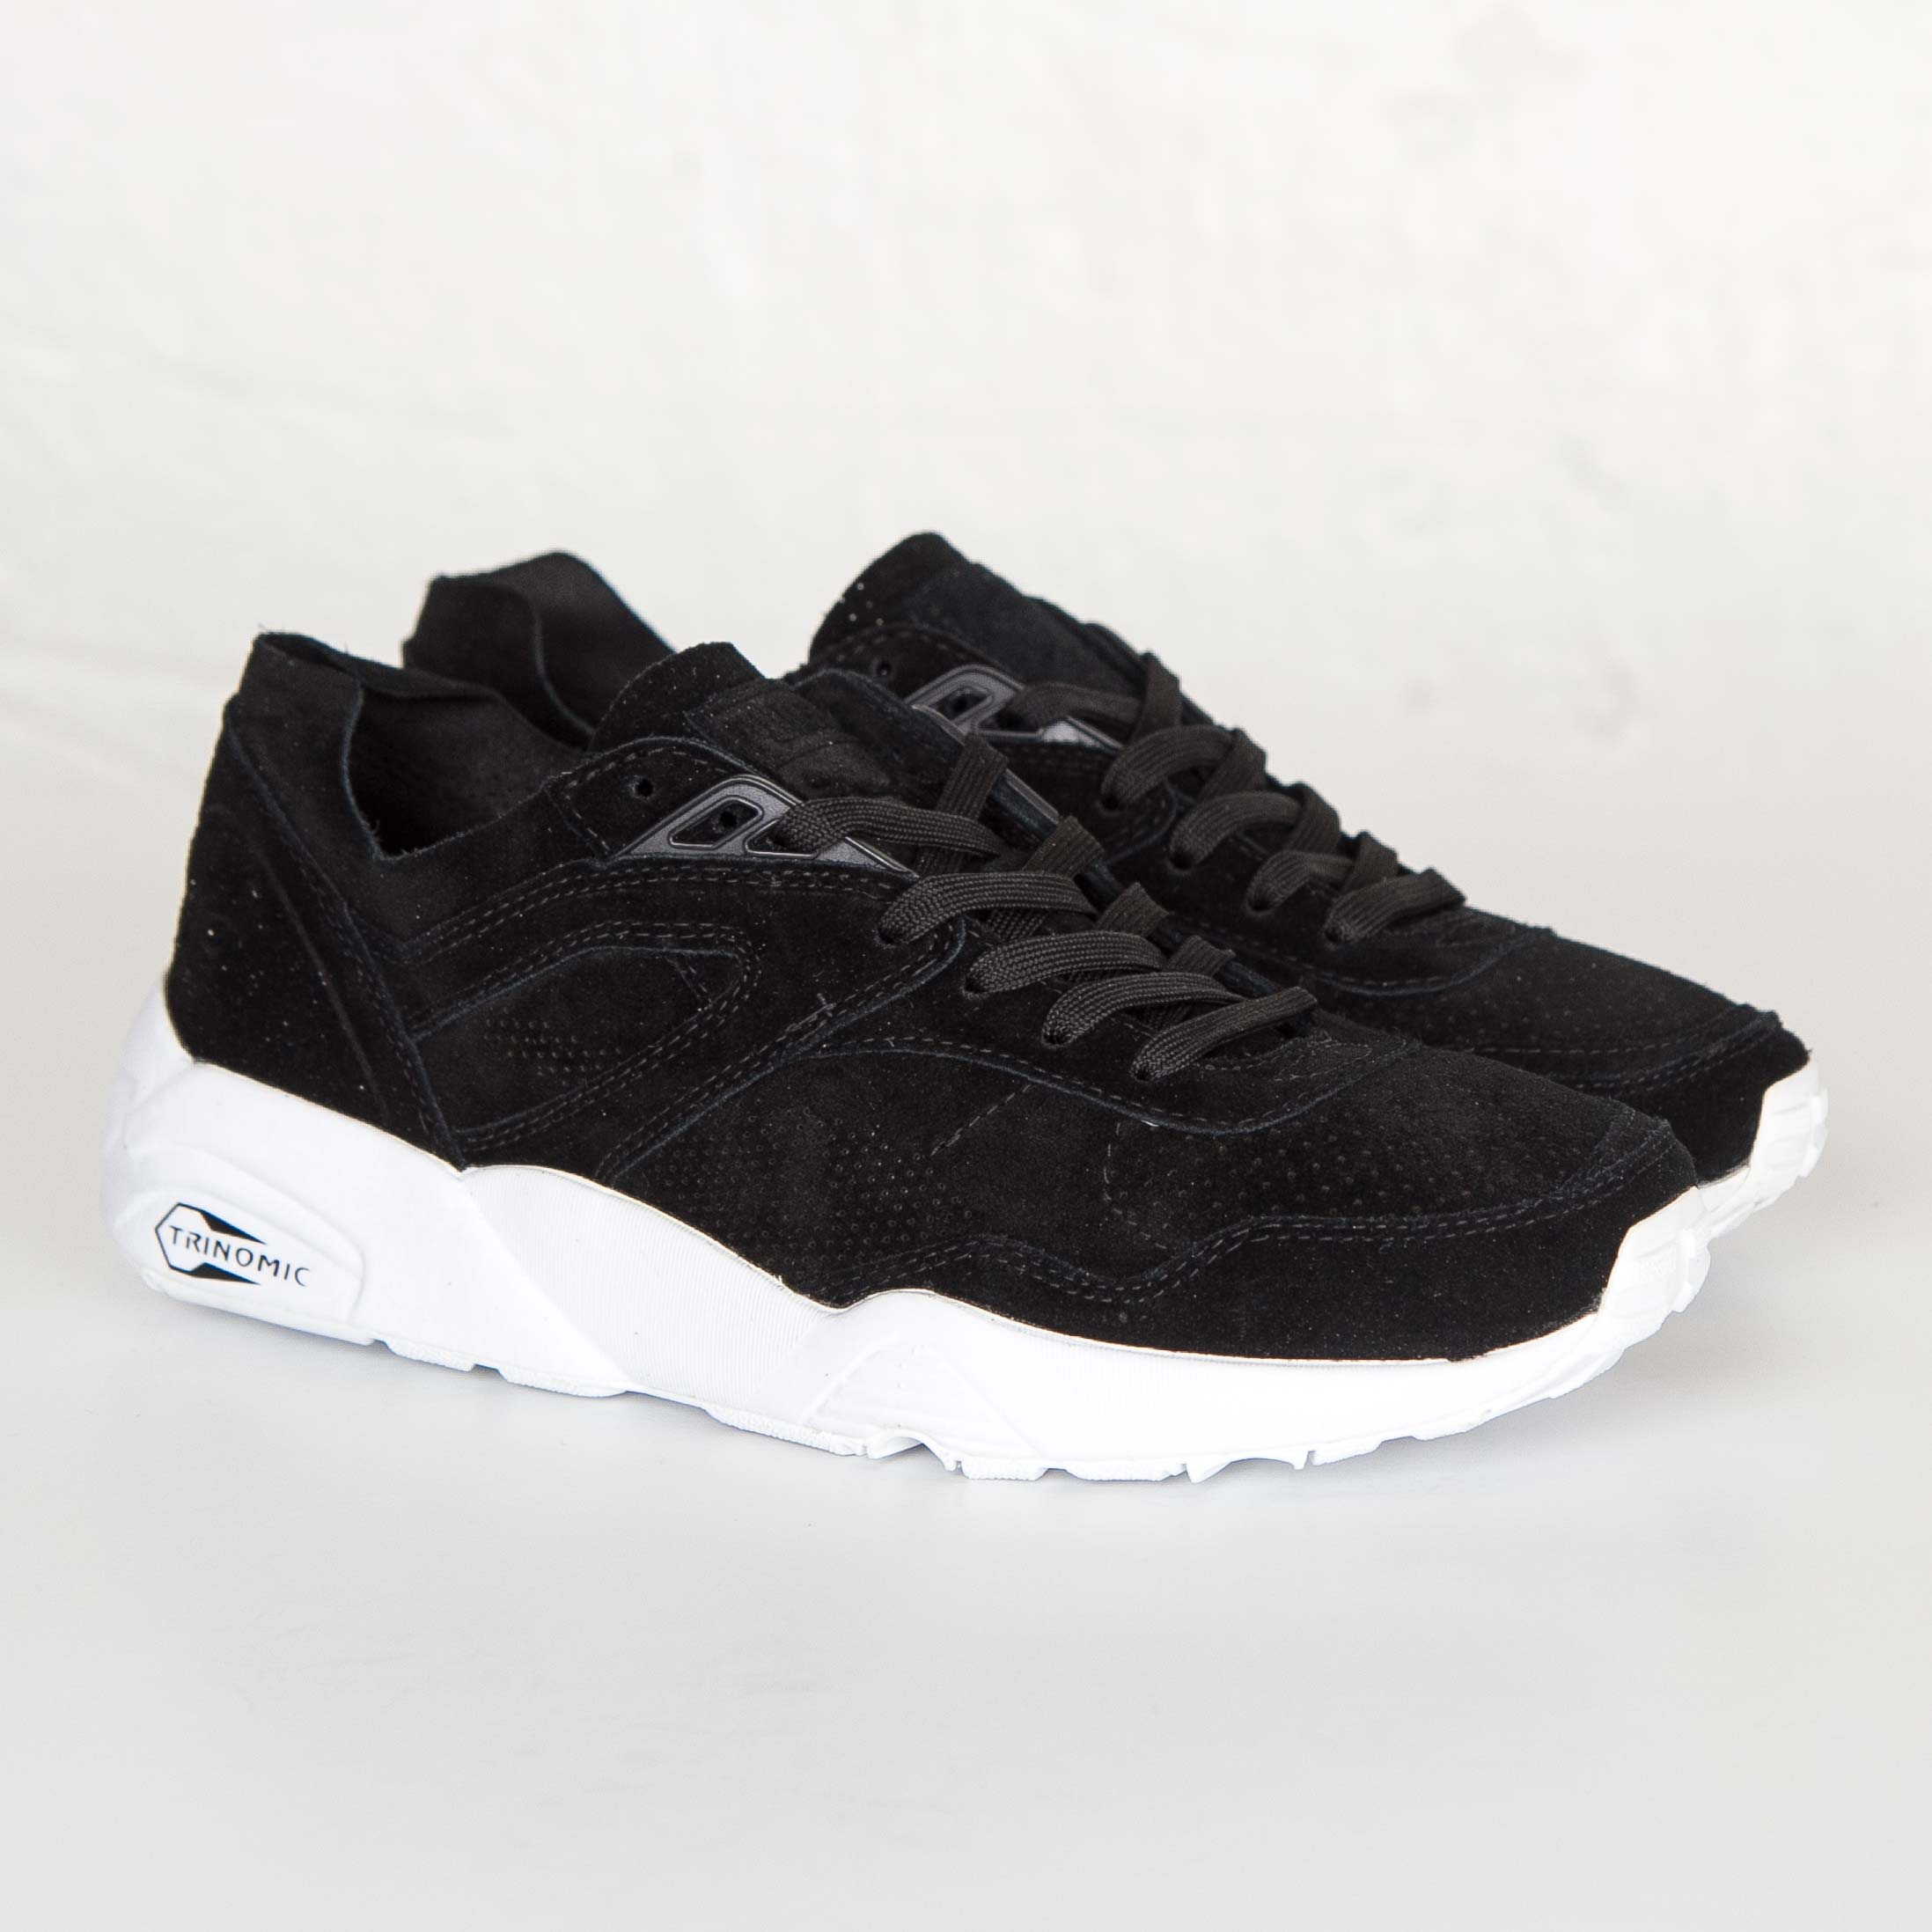 plus récent 22eae 12589 Puma R698 Soft - 360104-01 - Sneakersnstuff | sneakers ...